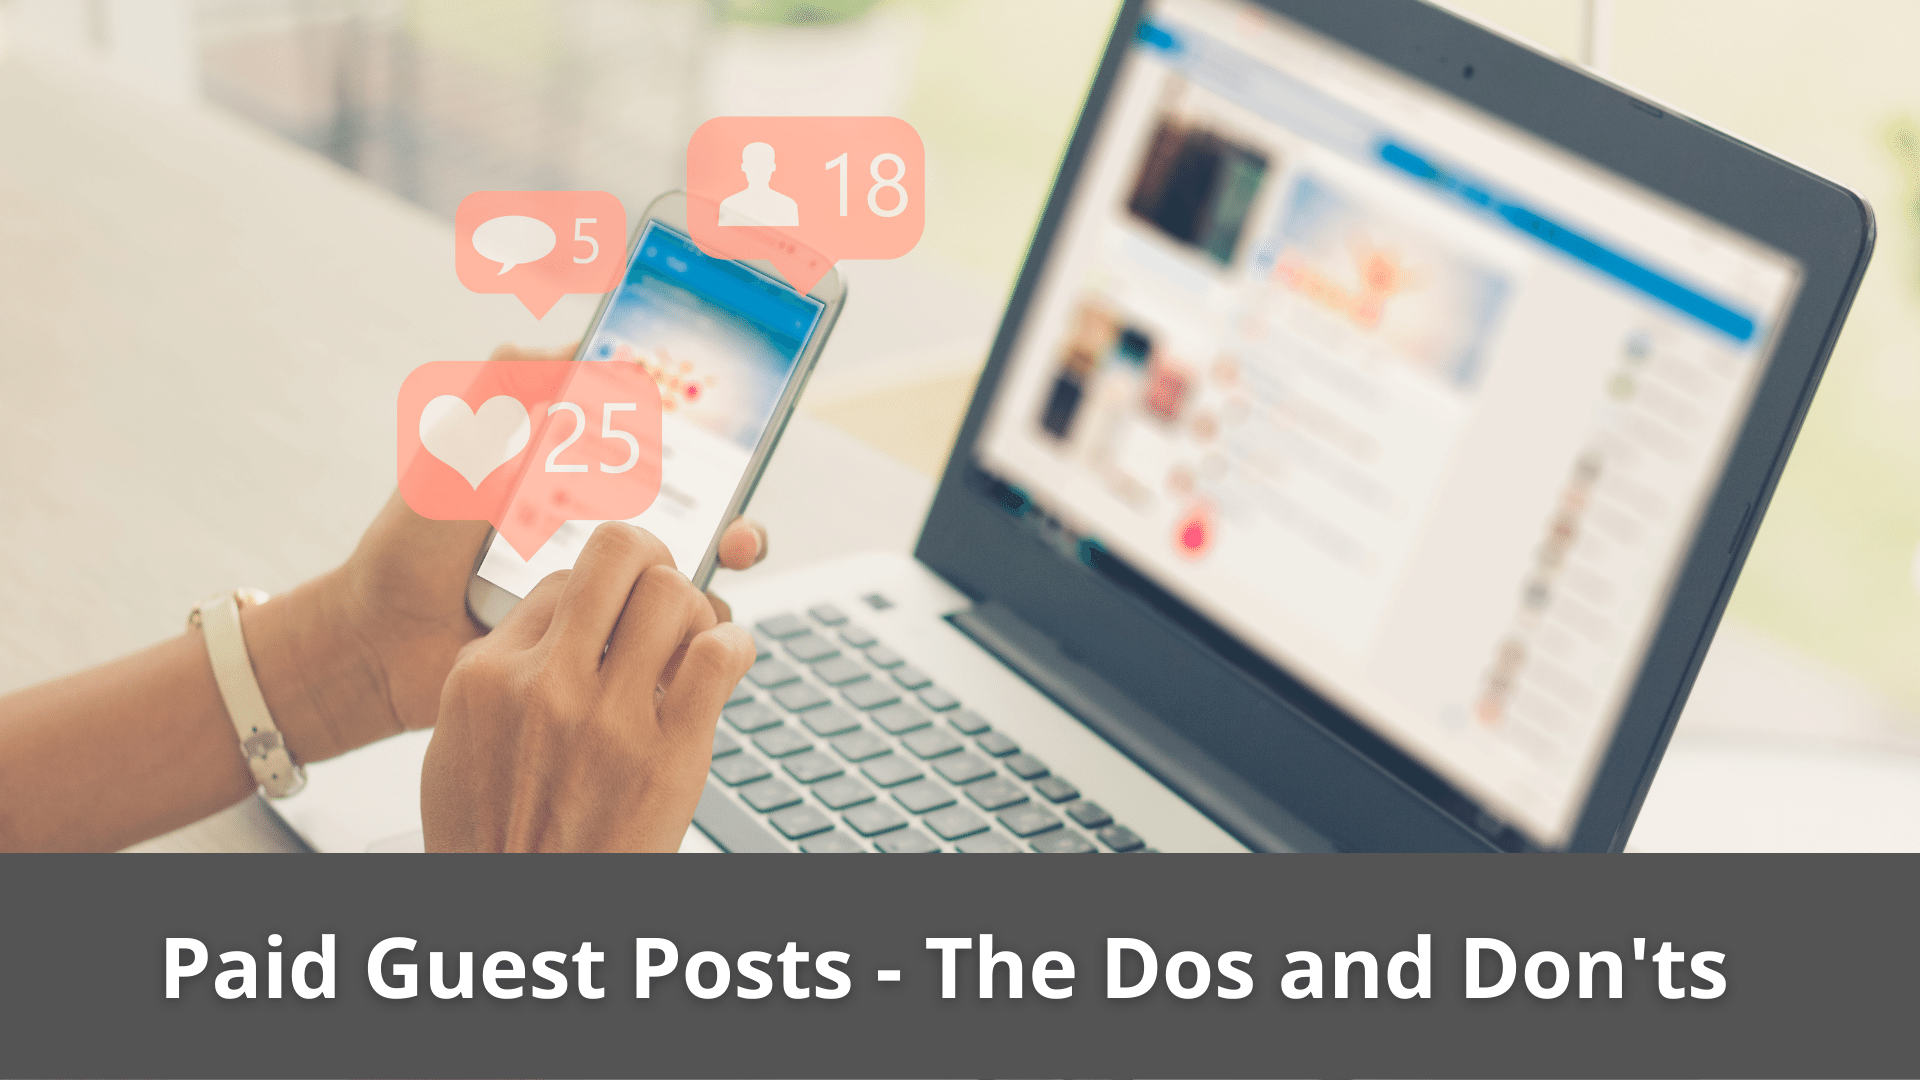 Paid Guest Posts - The Dos and Don'ts 41